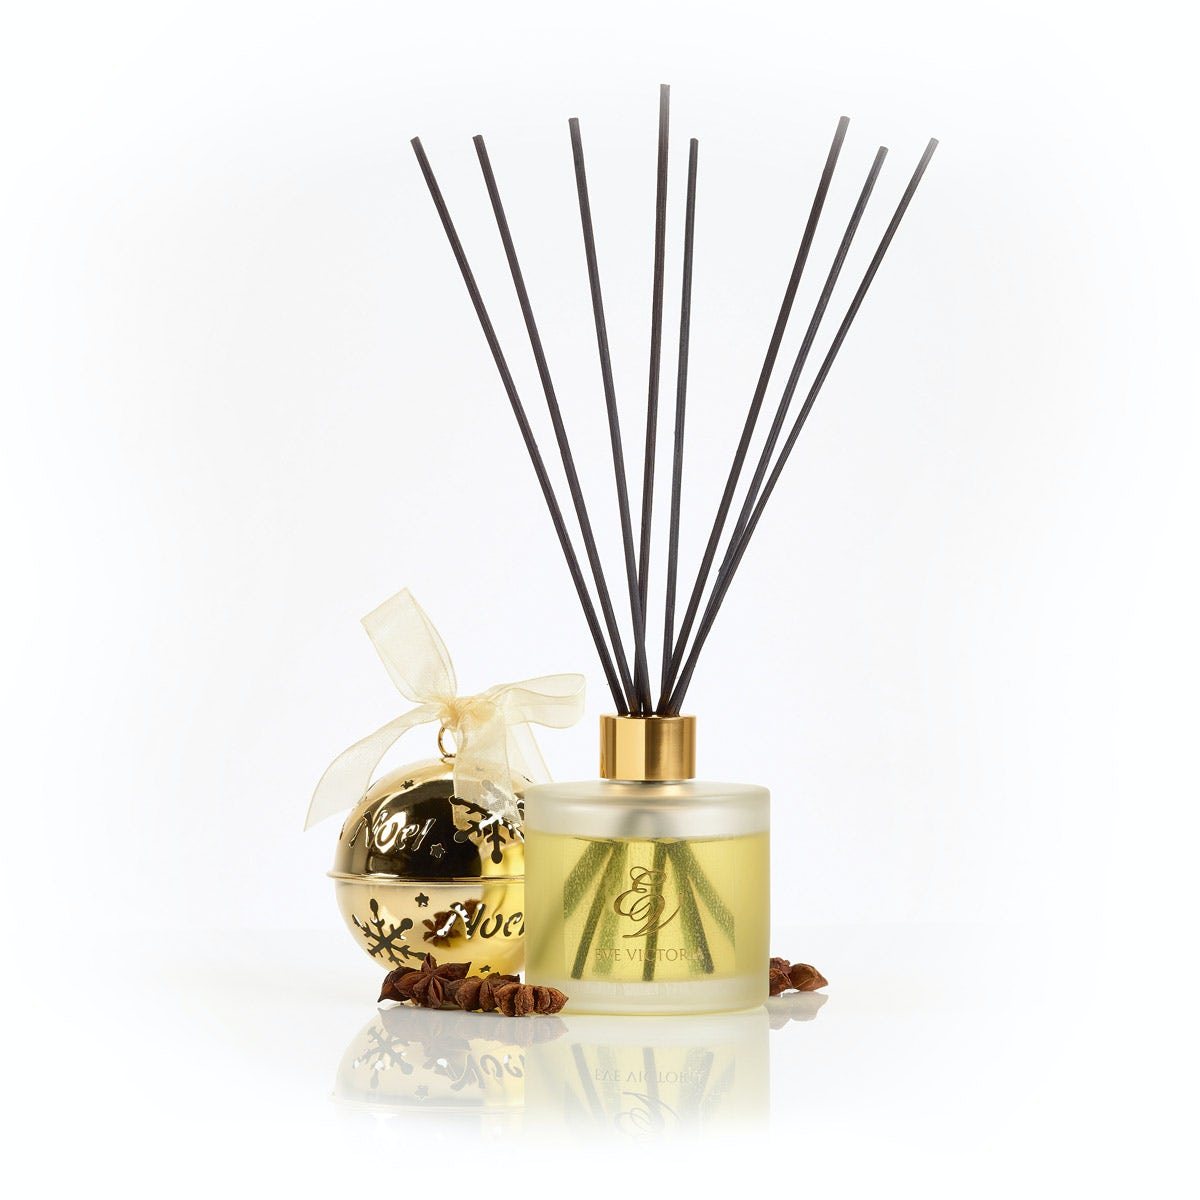 Eve Victoria Christmas eve reed diffuser 150ml